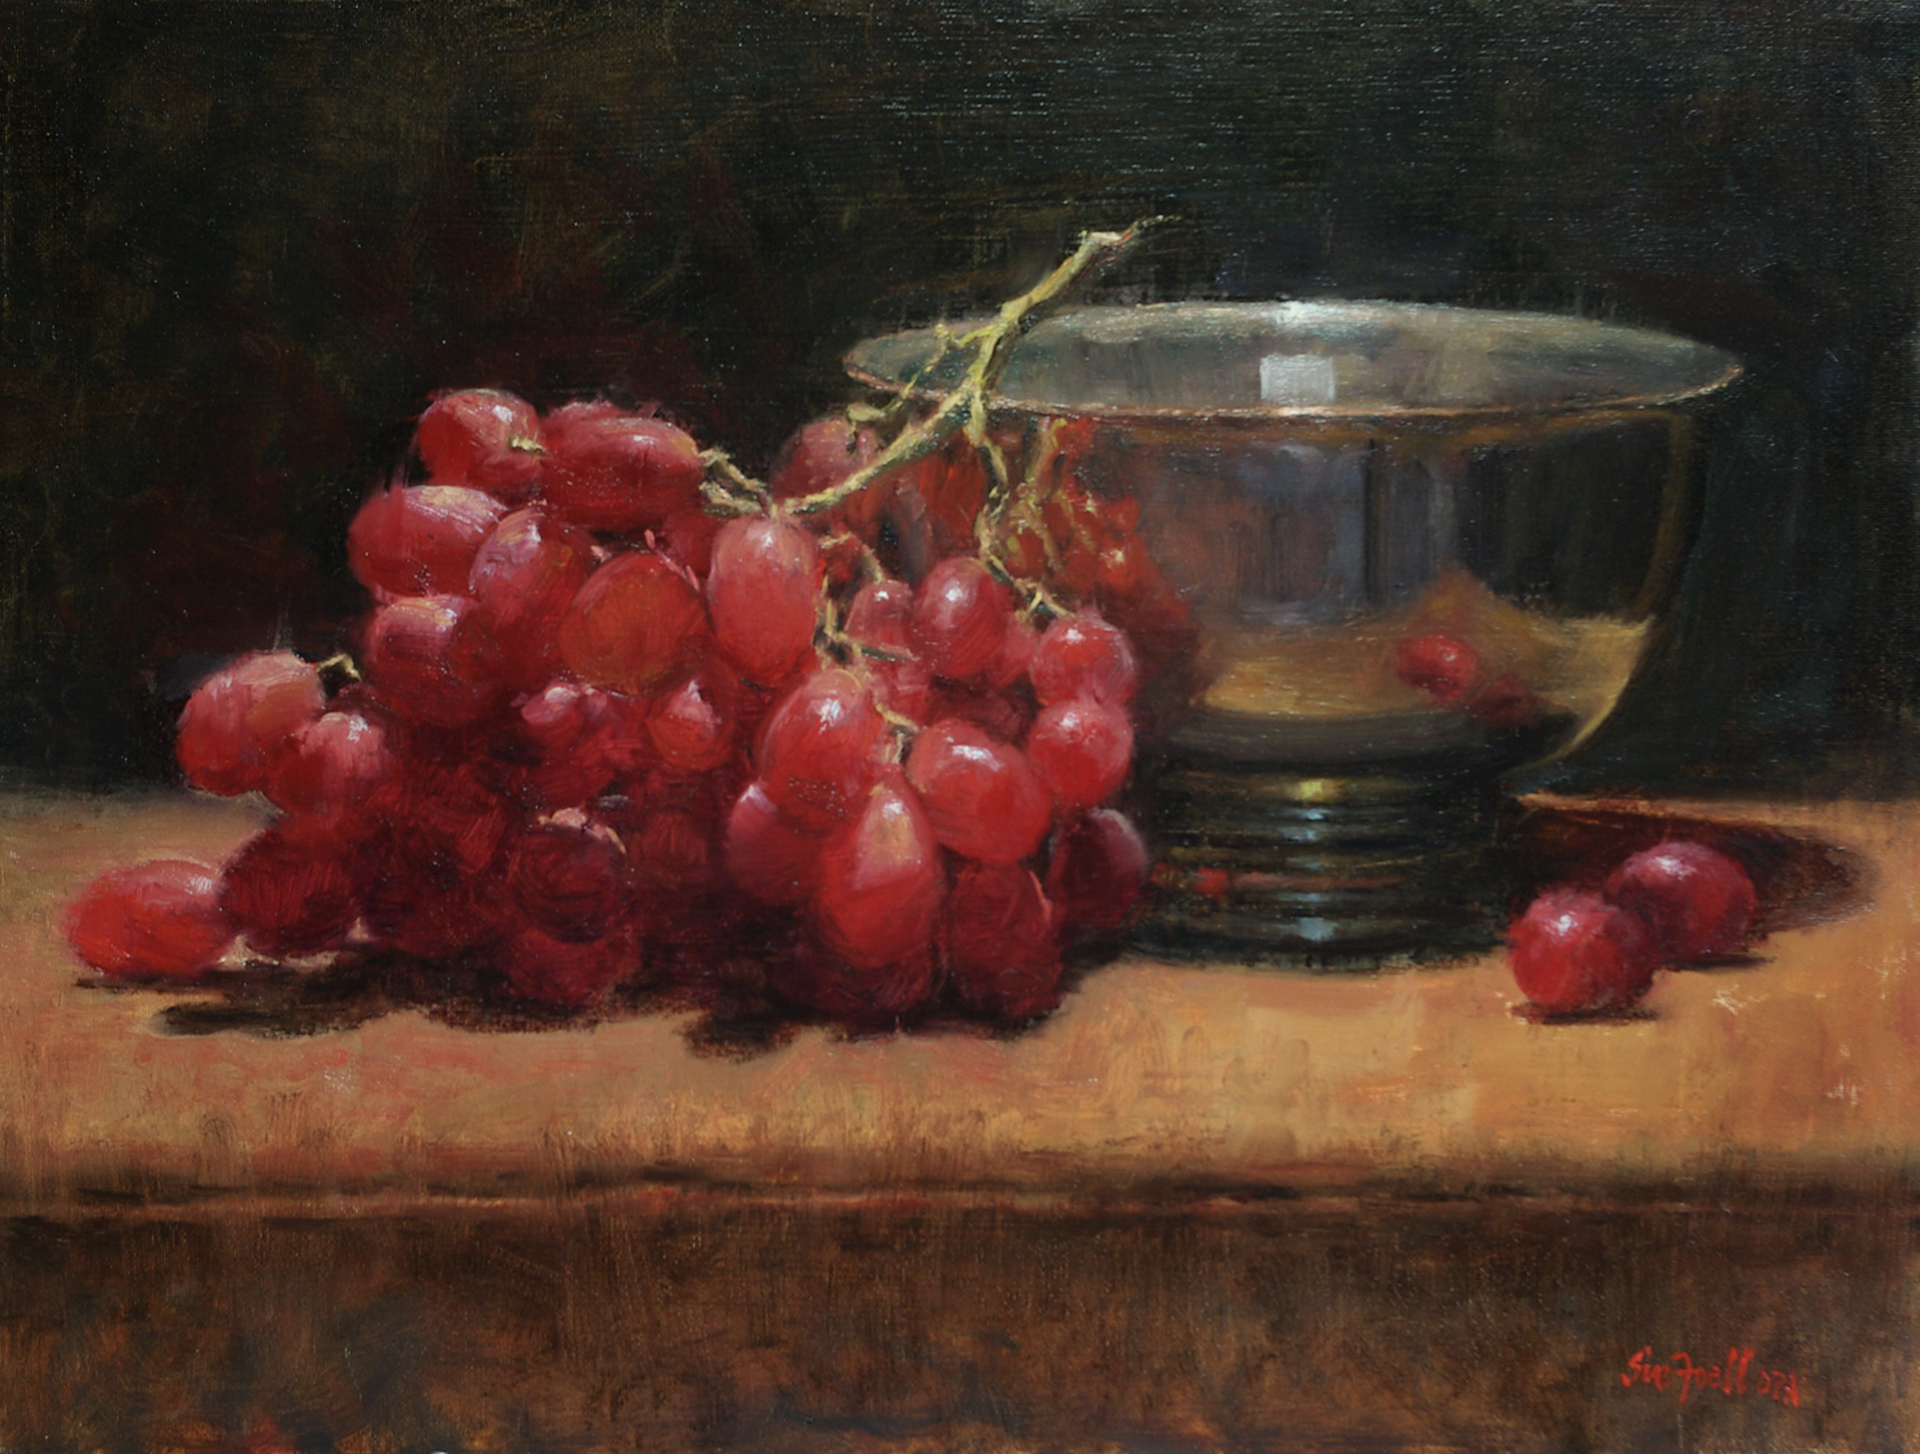 Grapes & Silver by Sue Foell, opa